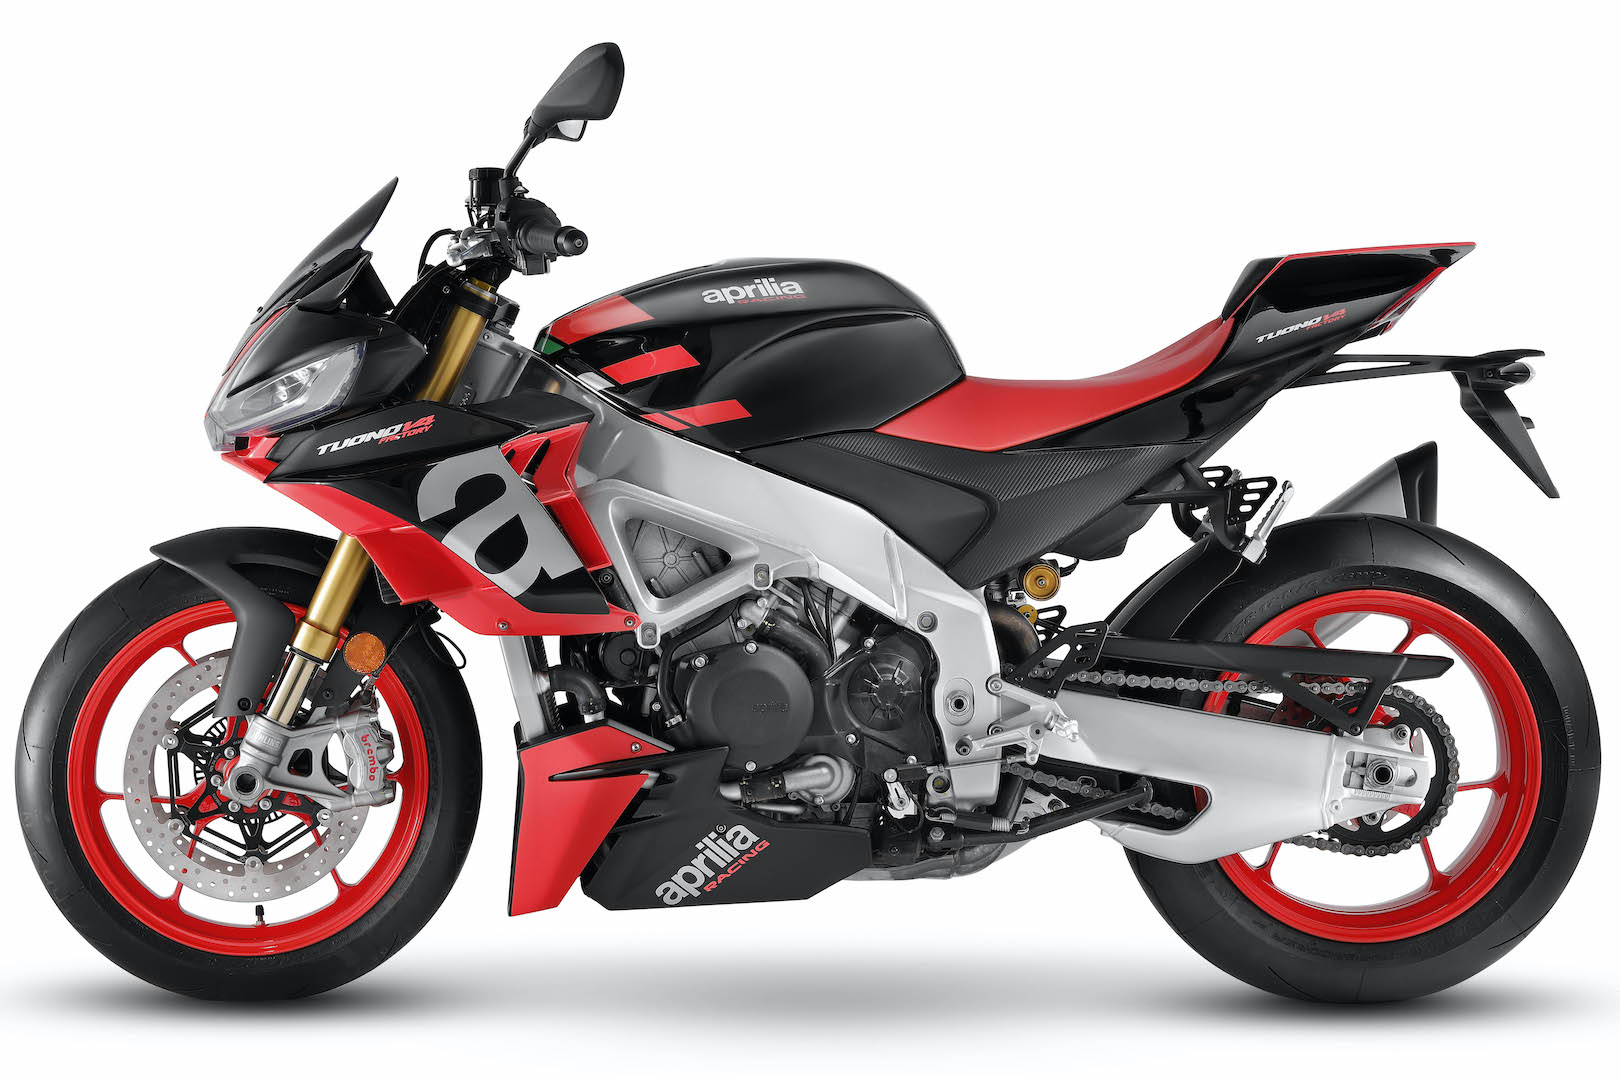 2021 Aprilia Tuono V4 Lineup First Look: Factory, price, MSRP